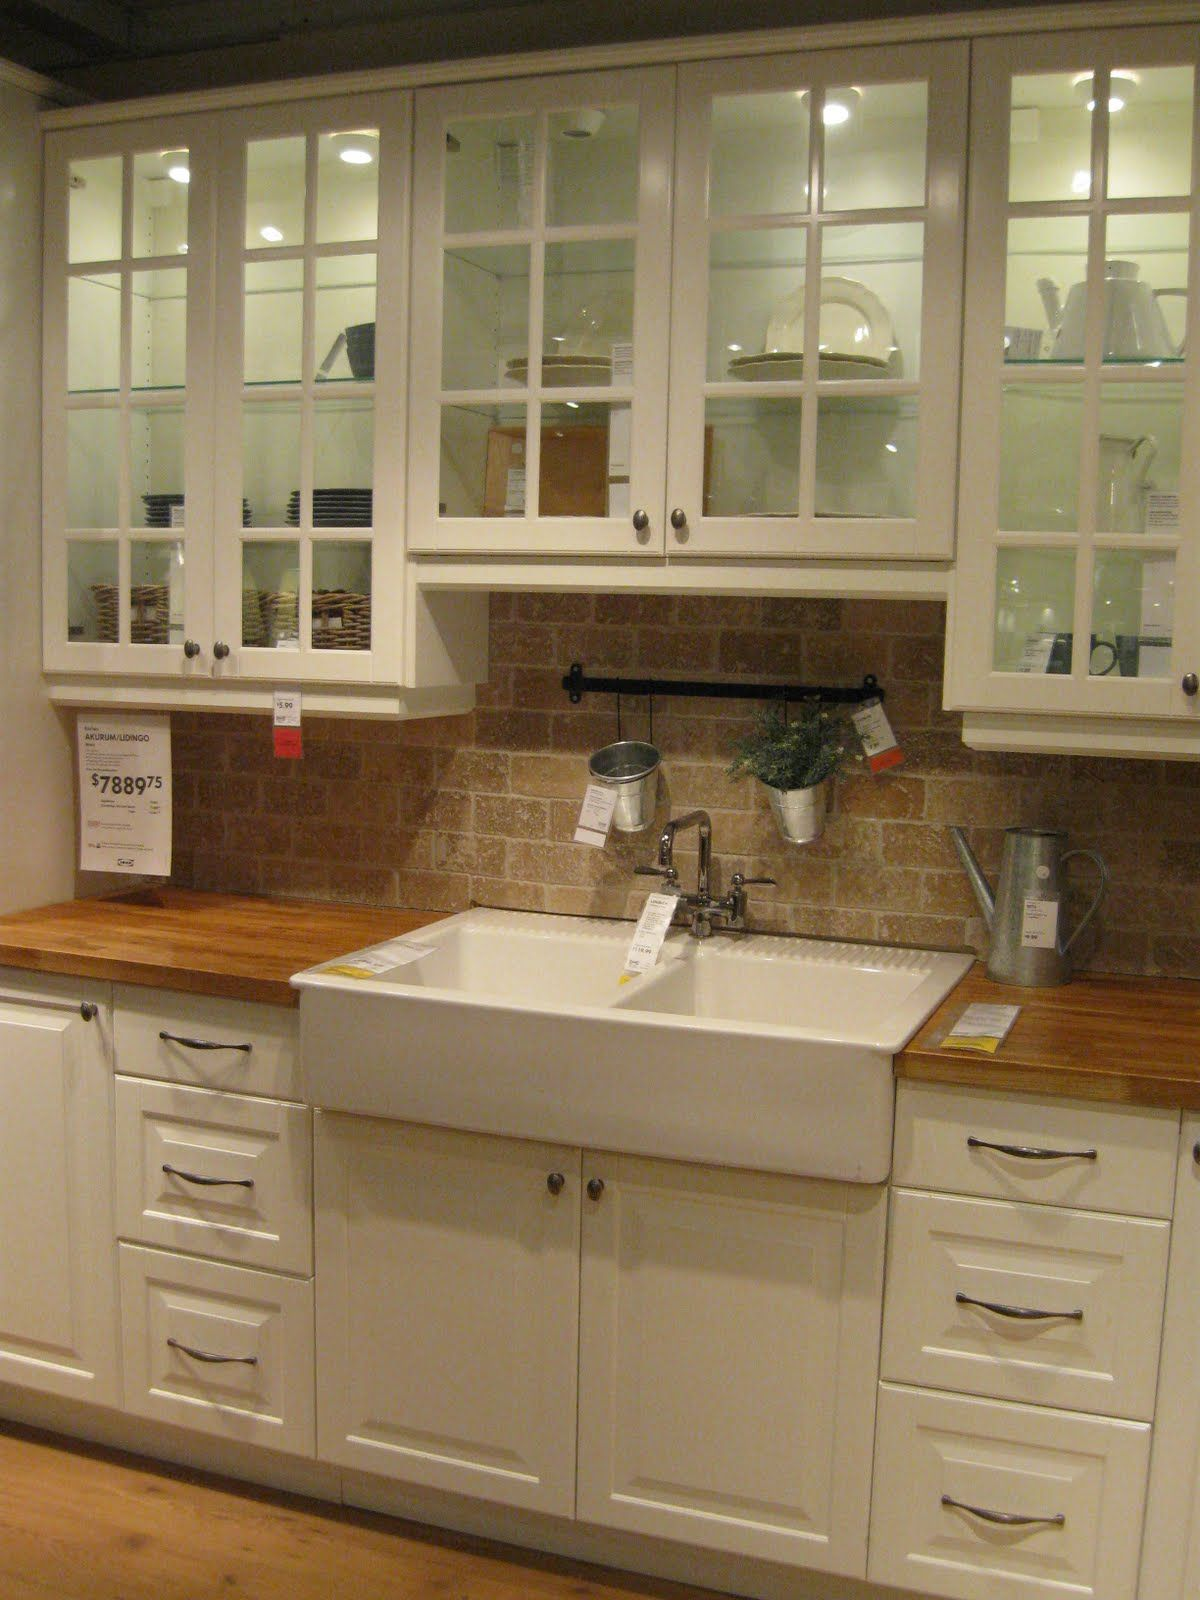 Merveilleux Drop In Apron Front Sink And Butcher Block Counter Tops!